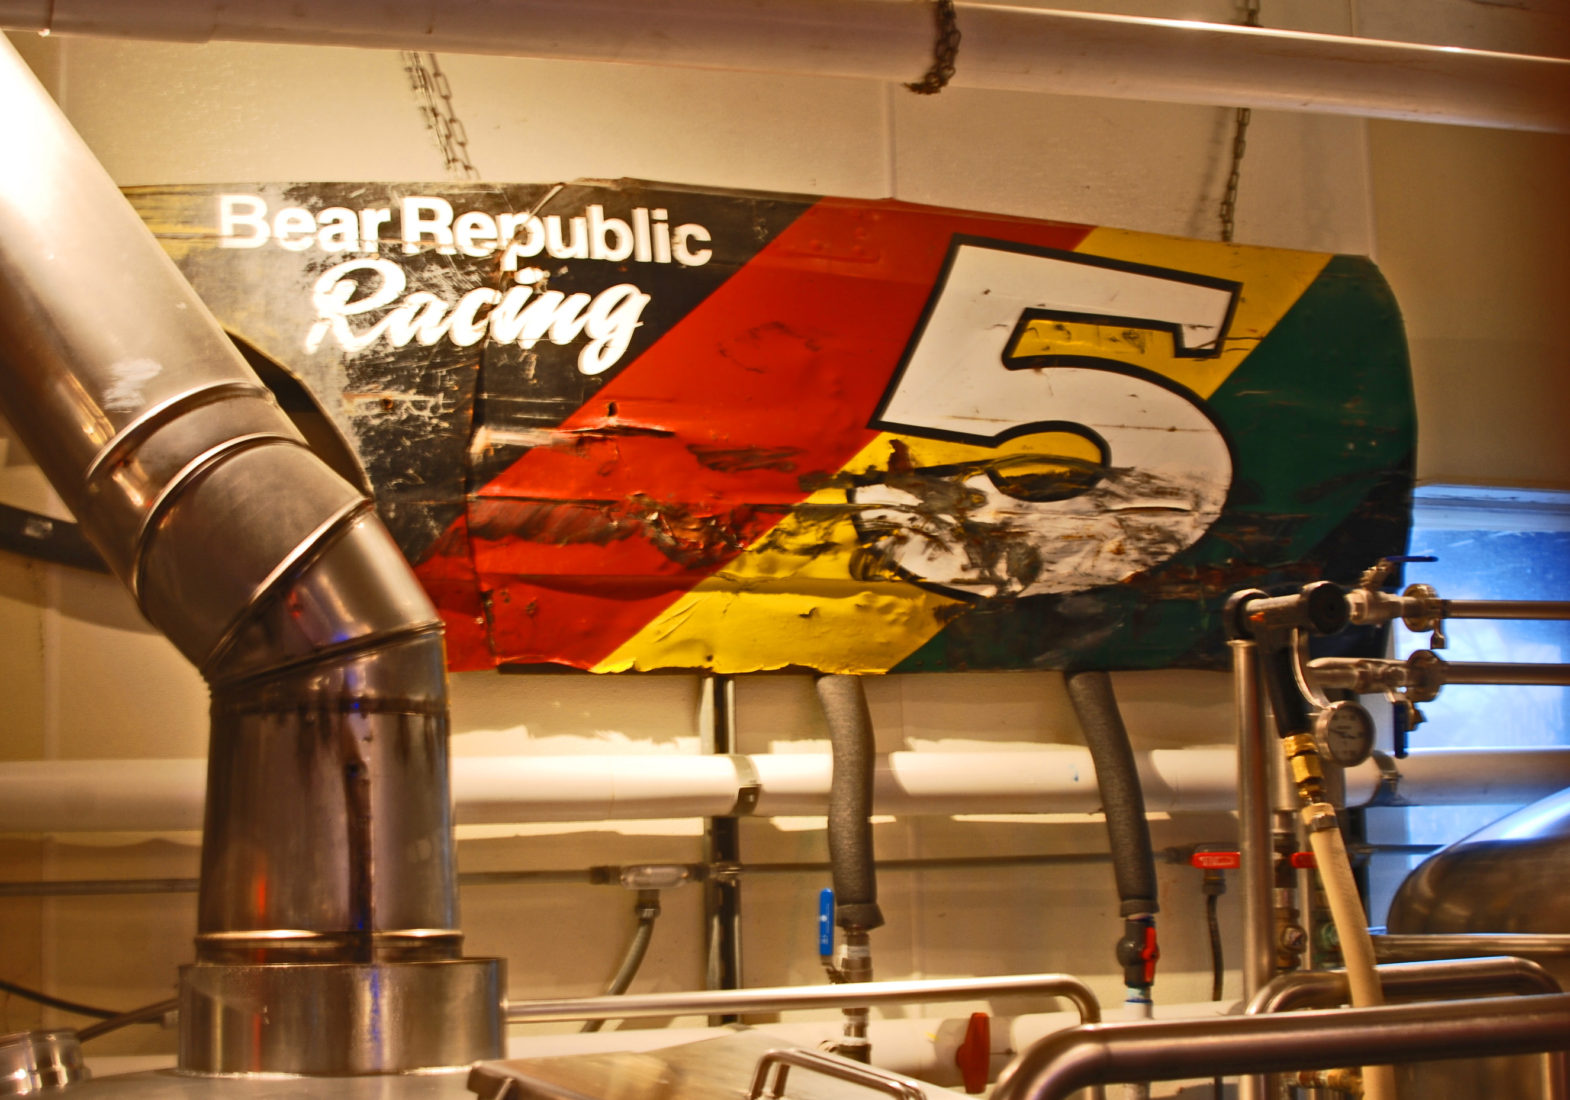 Bear Republic Brewpub, Healdsburg CA